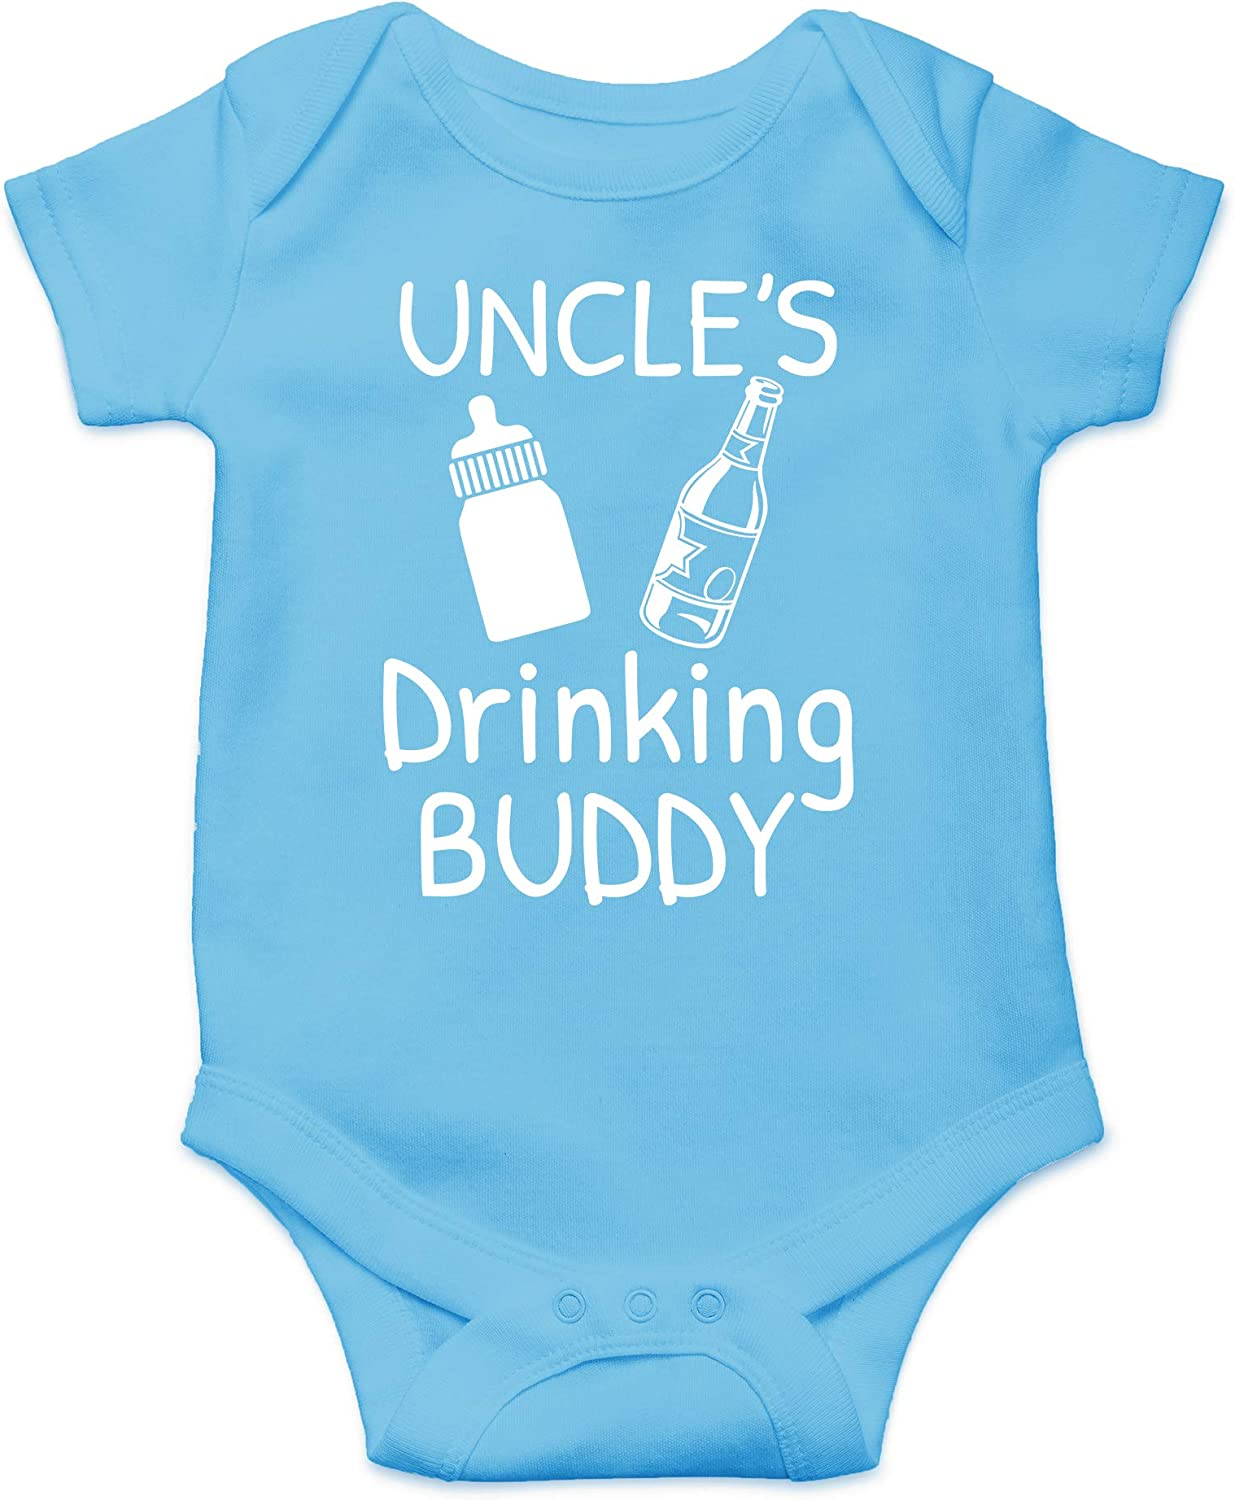 Max 87% OFF Uncles Drinking Buddy - Funny Soon Cute to Be Infant store One Uncle